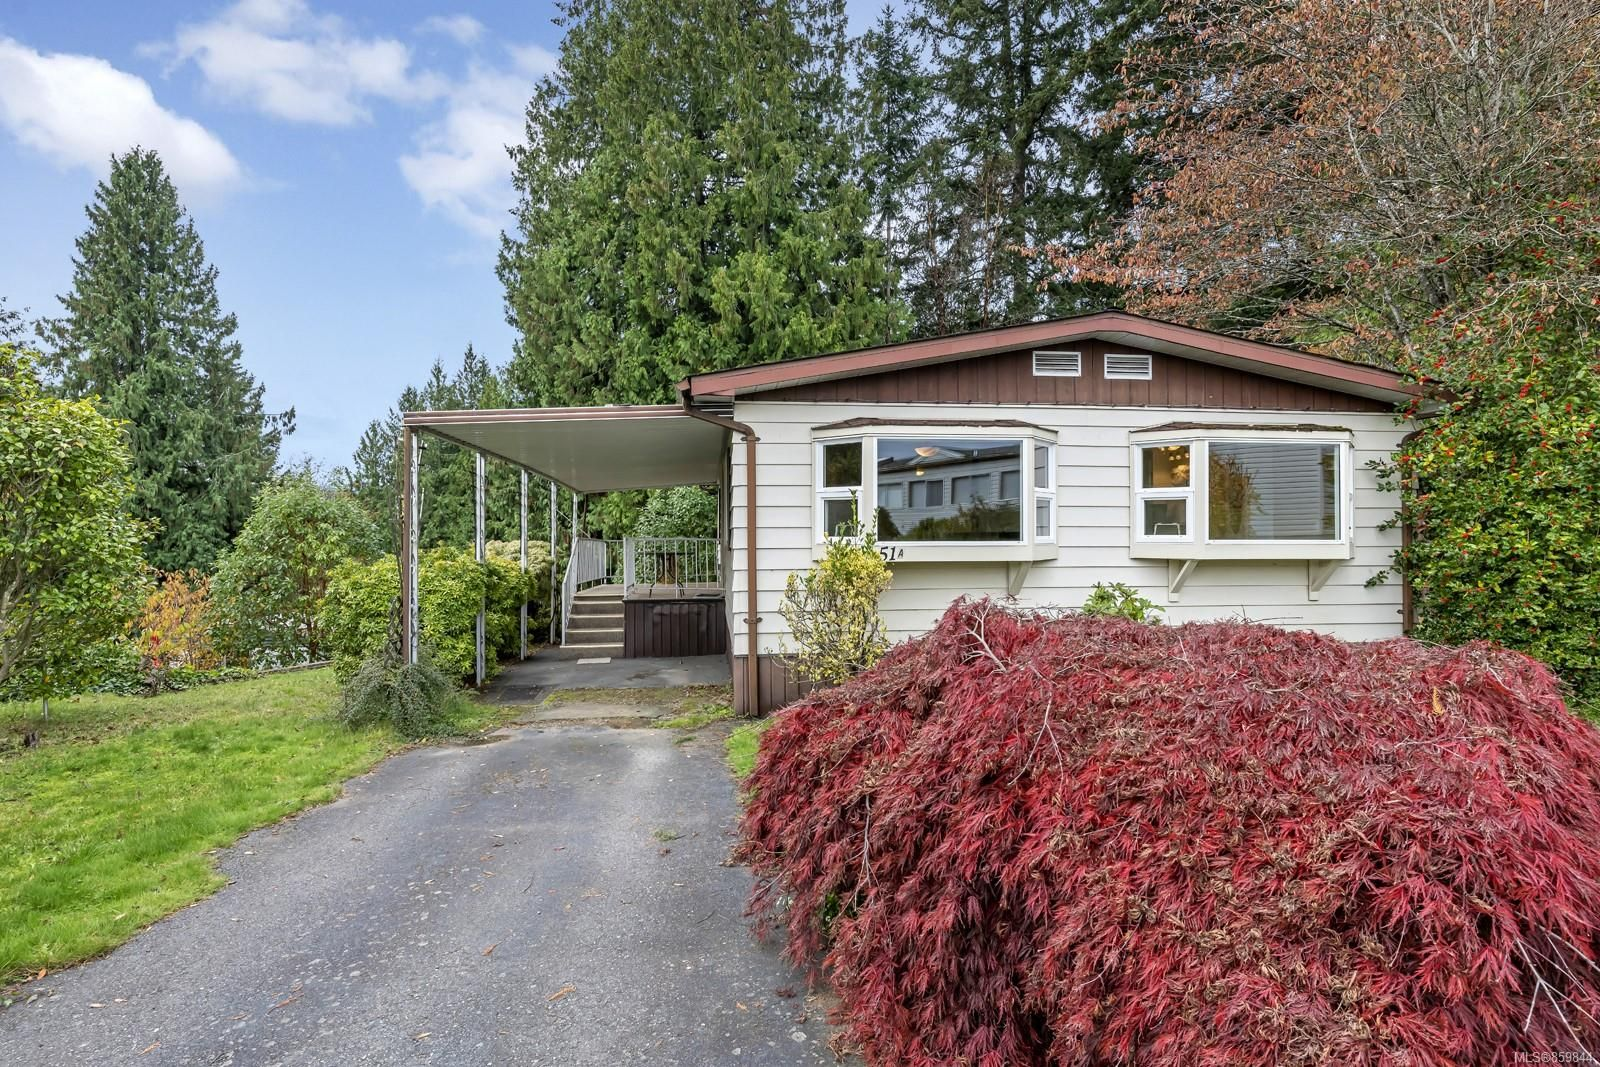 Main Photo: 51A 1000 Chase River Rd in : Na South Nanaimo Manufactured Home for sale (Nanaimo)  : MLS®# 859844